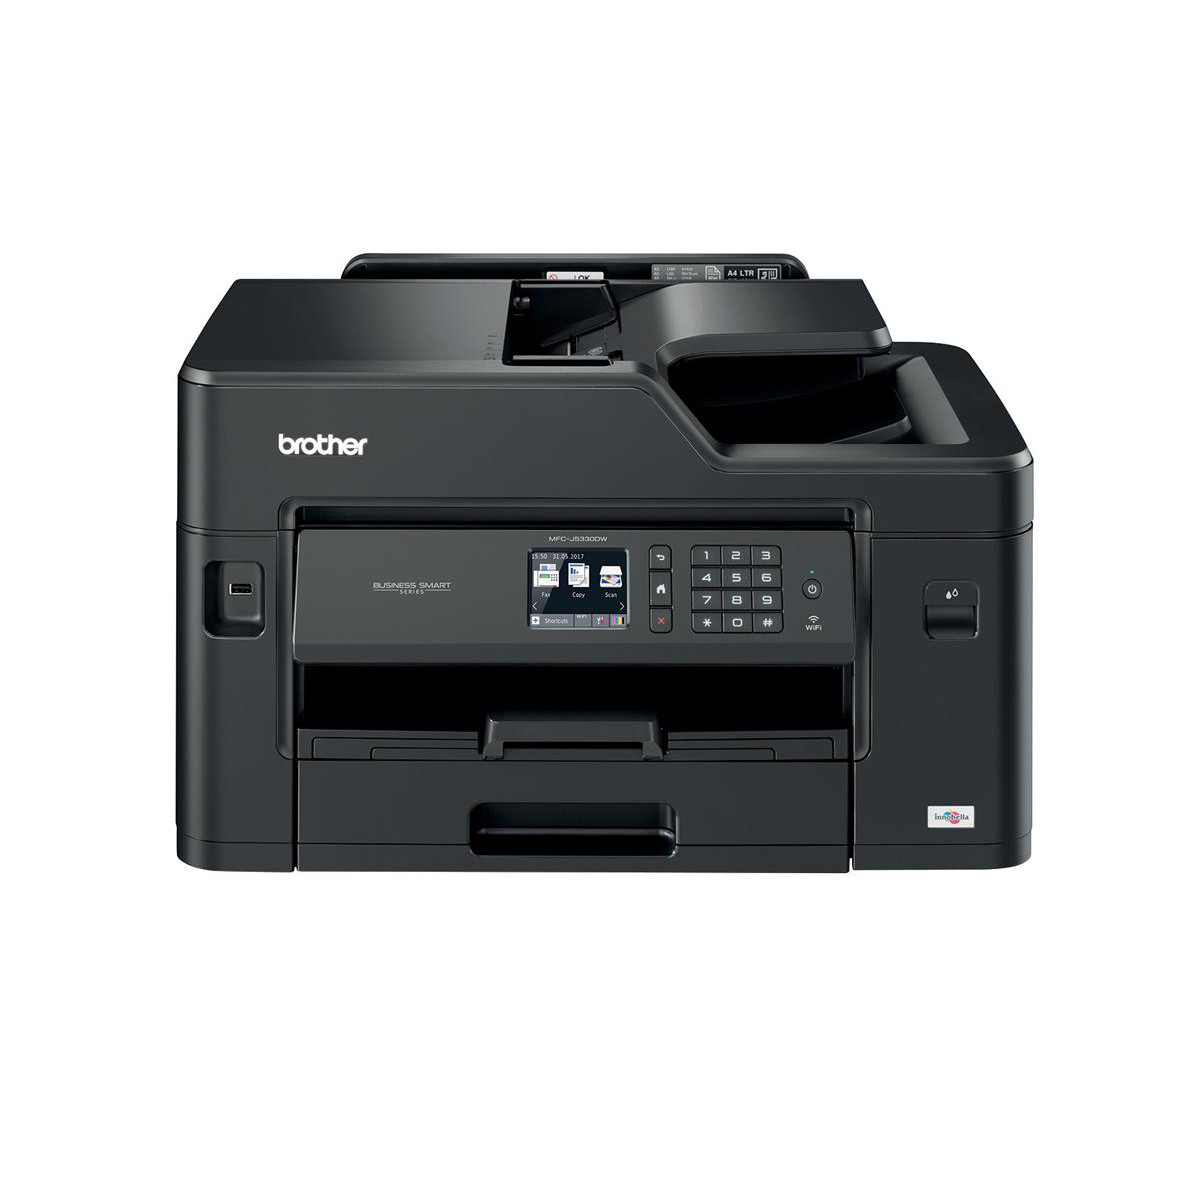 Brother Colour Multifunction A4 Inkjet Printer Ref MFCJ5330DWZU1